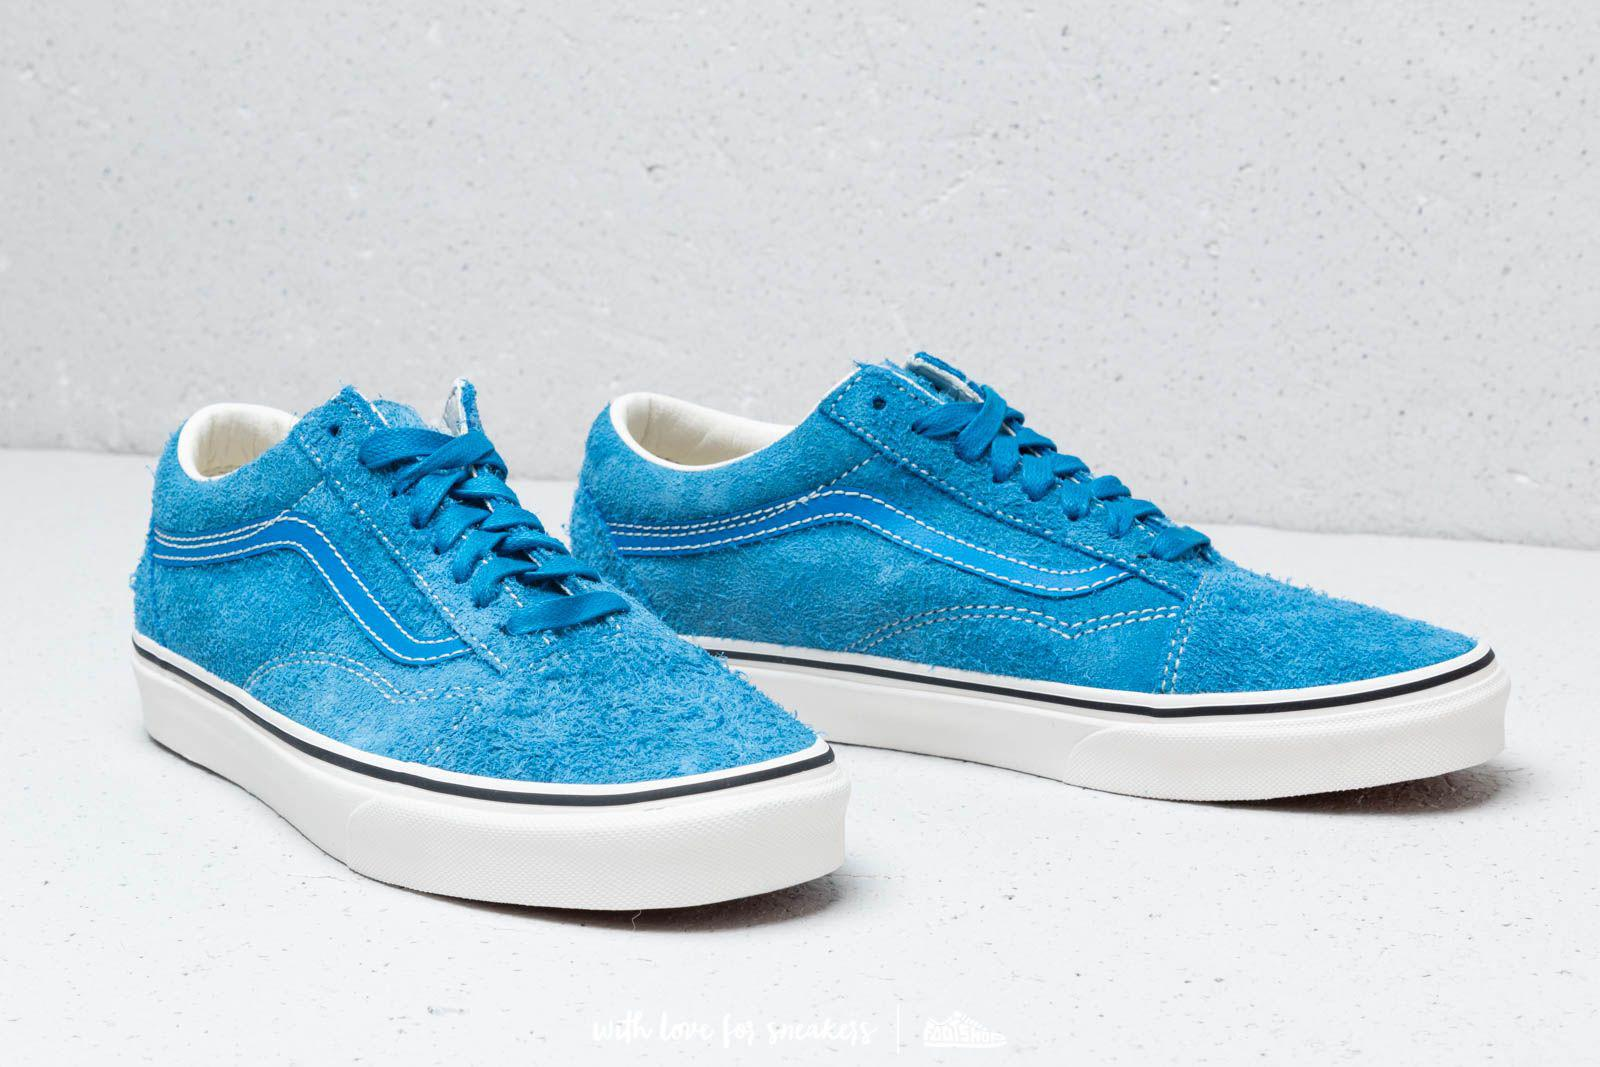 0c5ea32e53 Lyst - Vans Old Skool (hairy Suede) Indigo Bunting  Snow White in ...